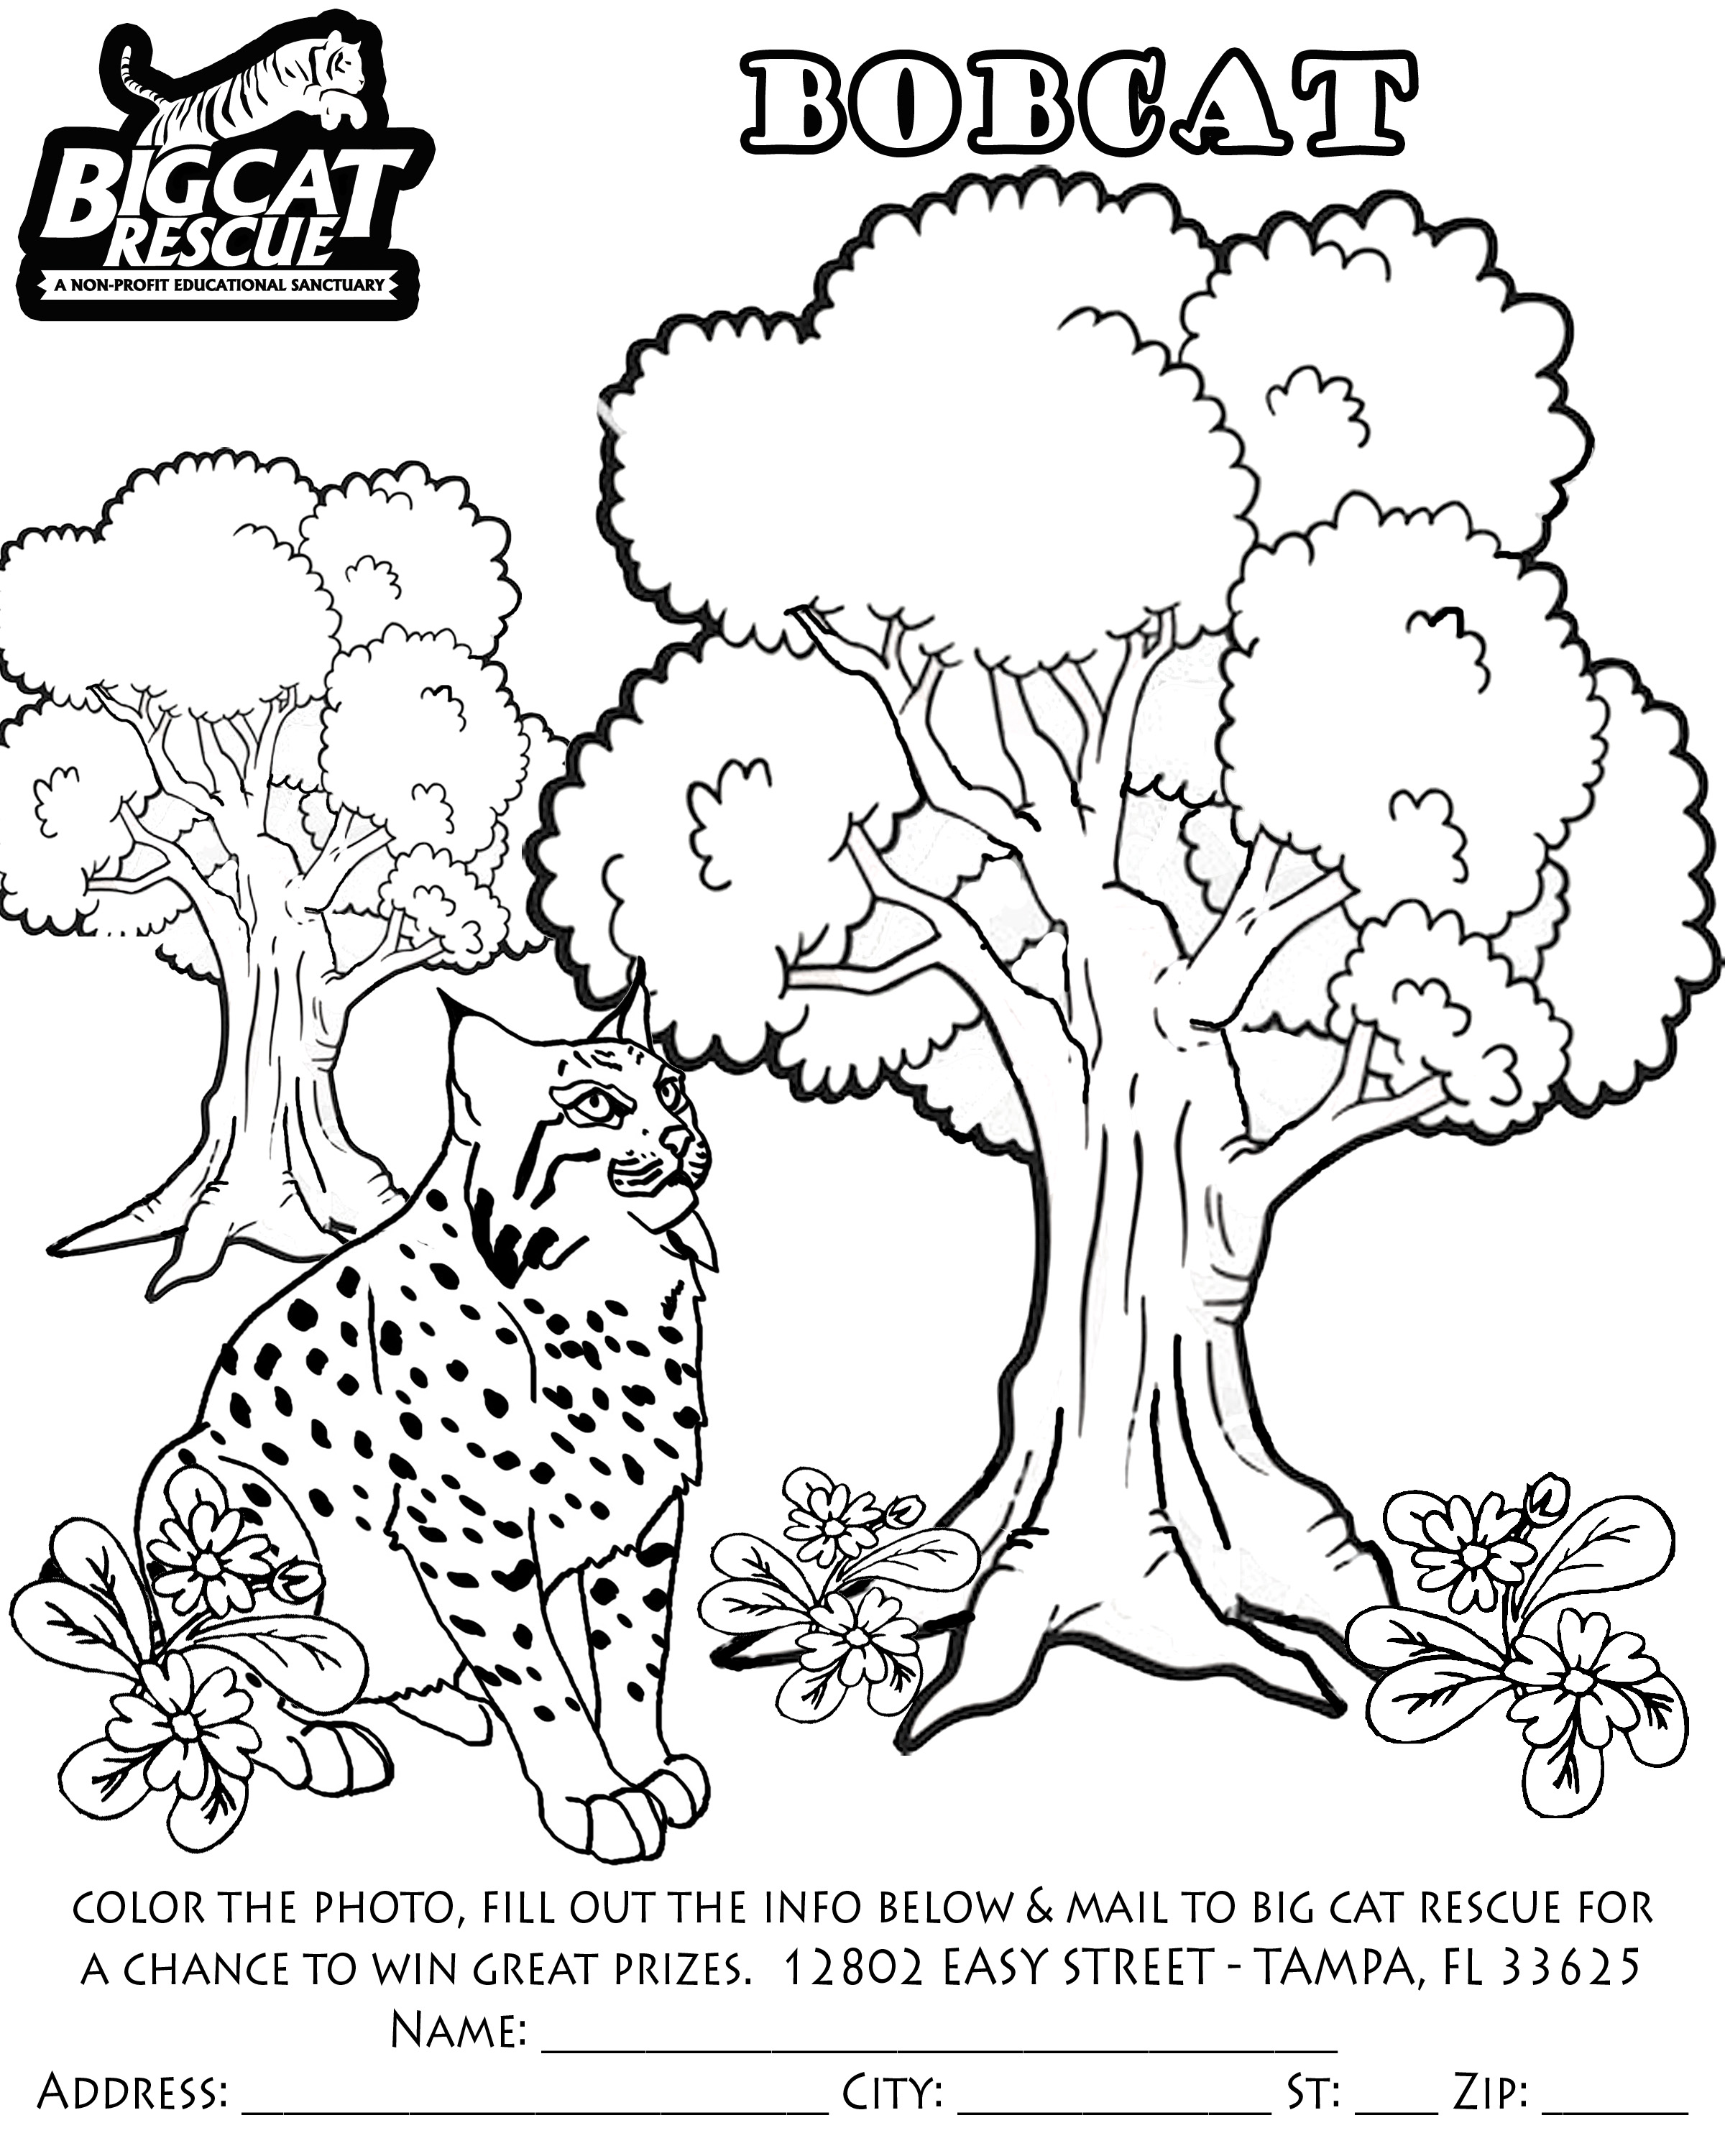 bobcat pictures to color bobcat coloring pages to download and print for free color bobcat to pictures